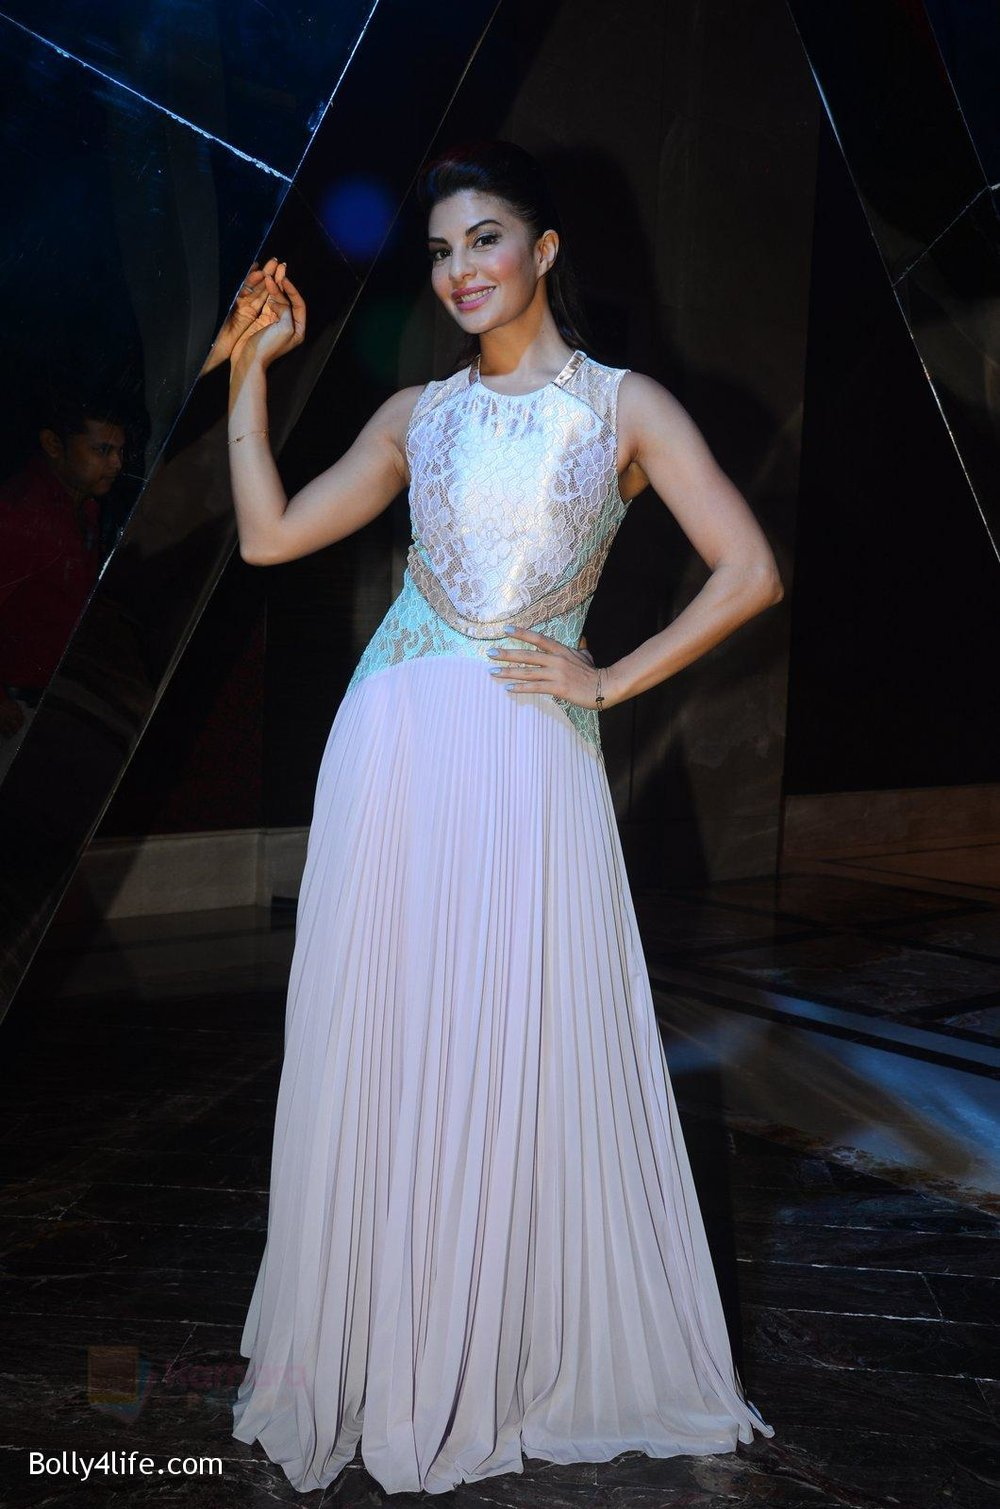 Jacqueline-Fernandez-at-W-Goa-launch-party-on-7th-Oct-2016-78.jpg